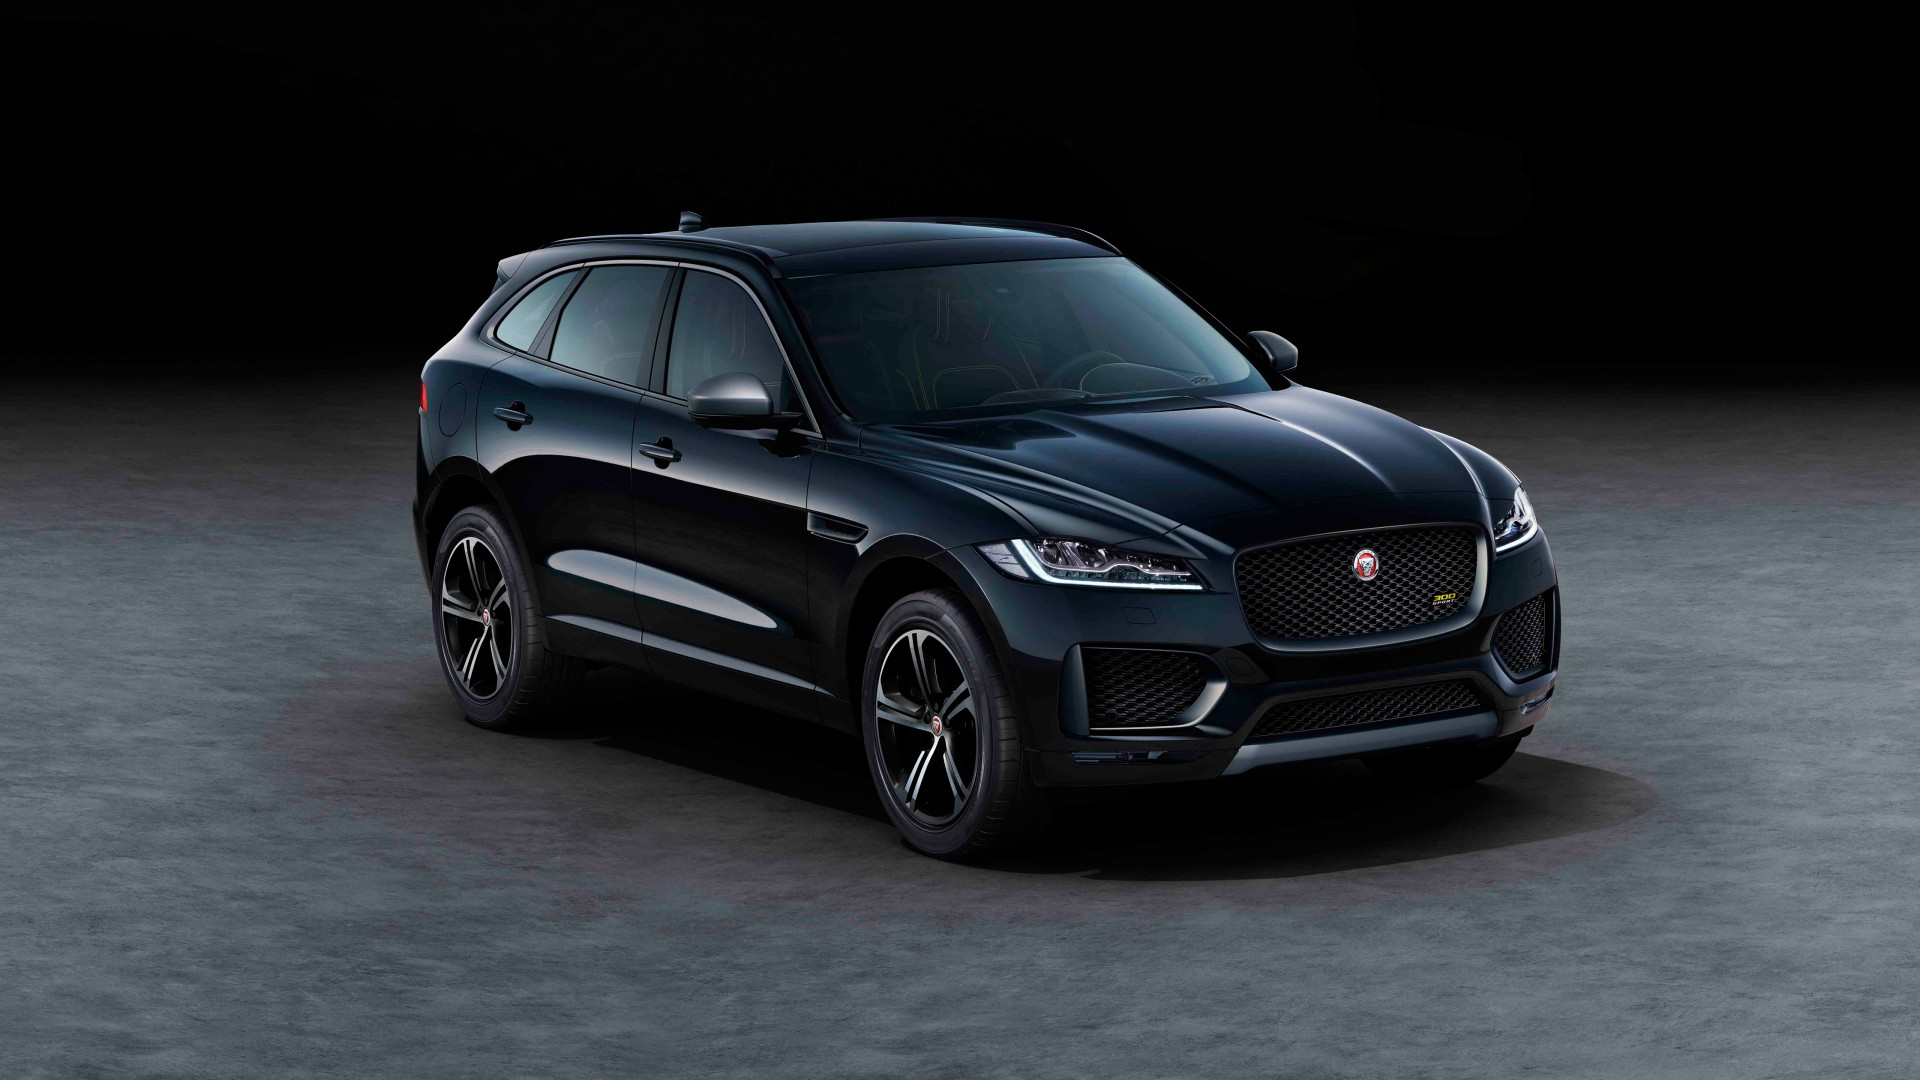 Jaguar F Pace 300 Sport 2019 4k Wallpaper Hd Car